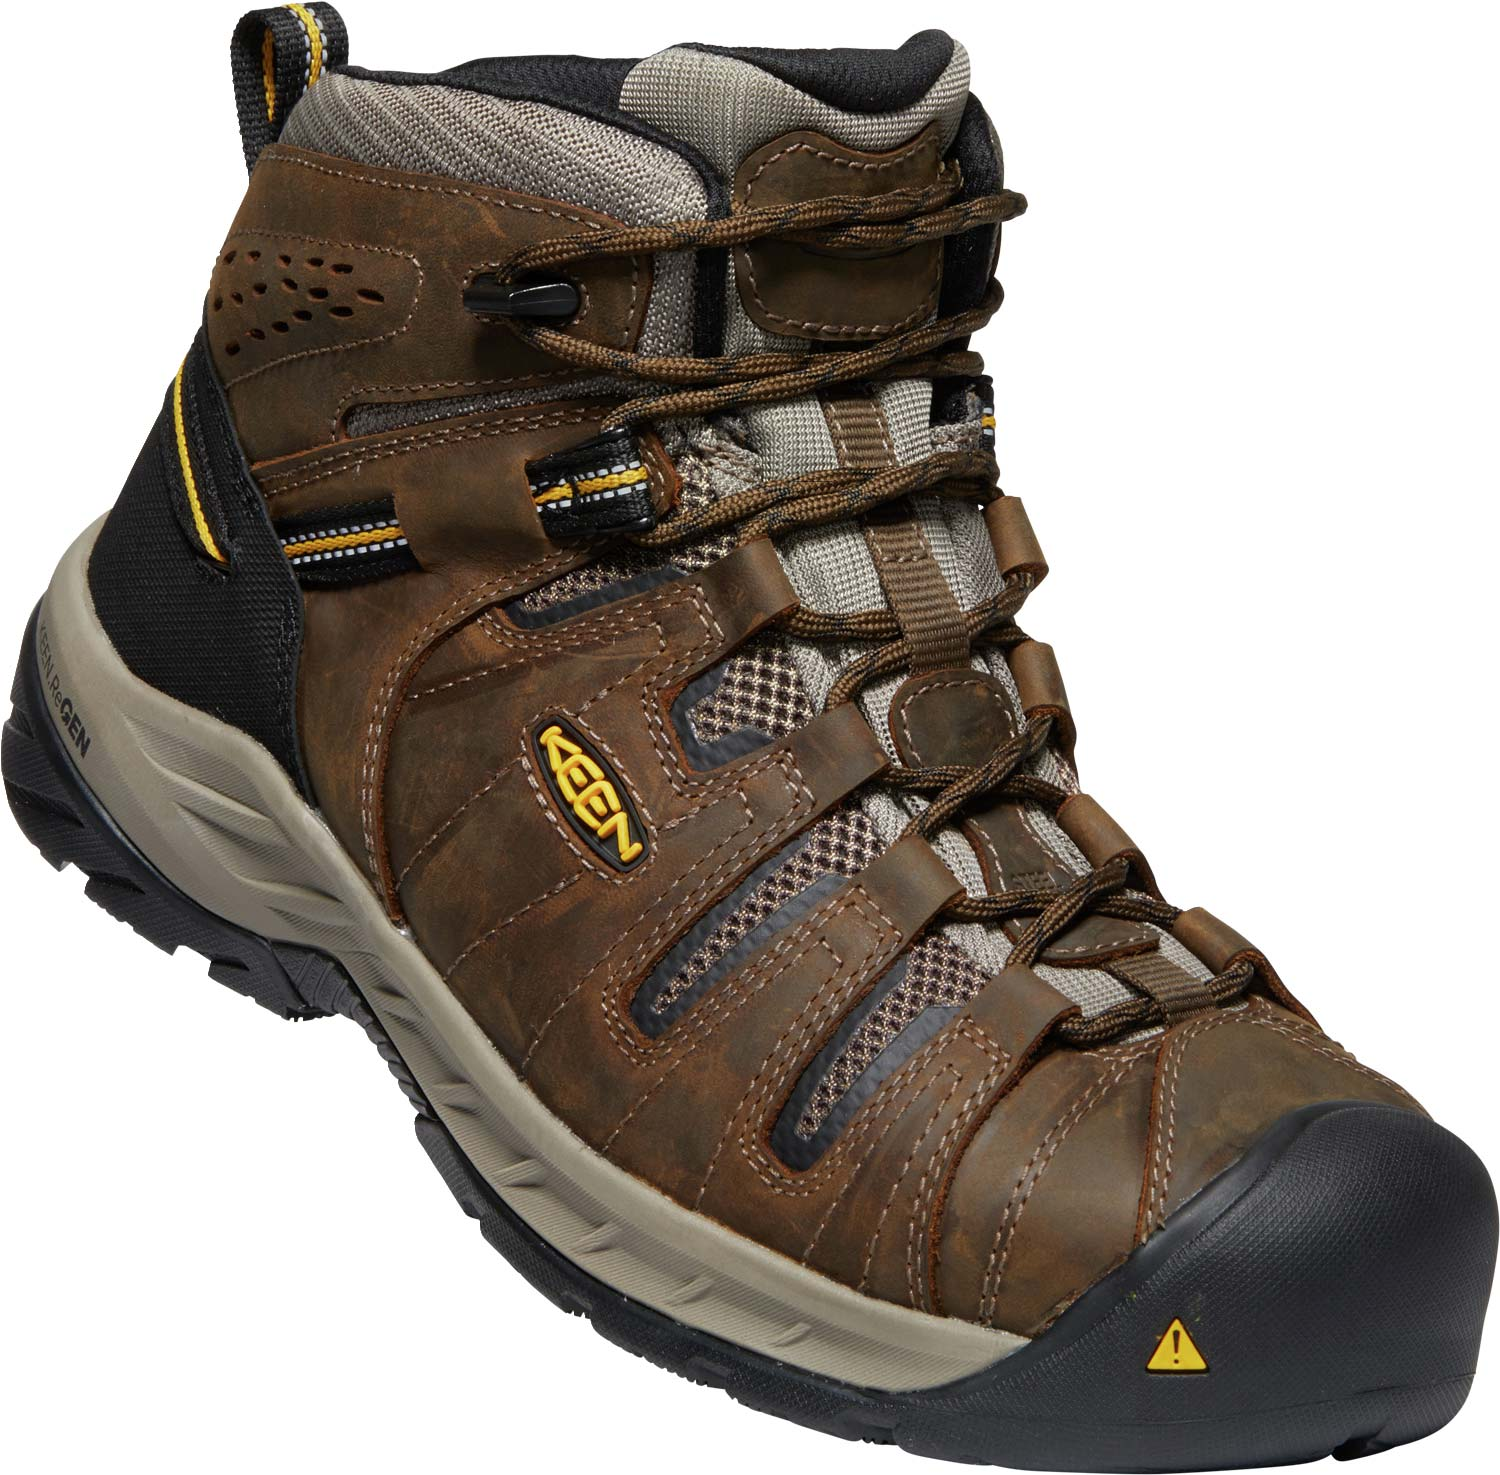 Keen 1023237 Flint II Mid Safety Toe